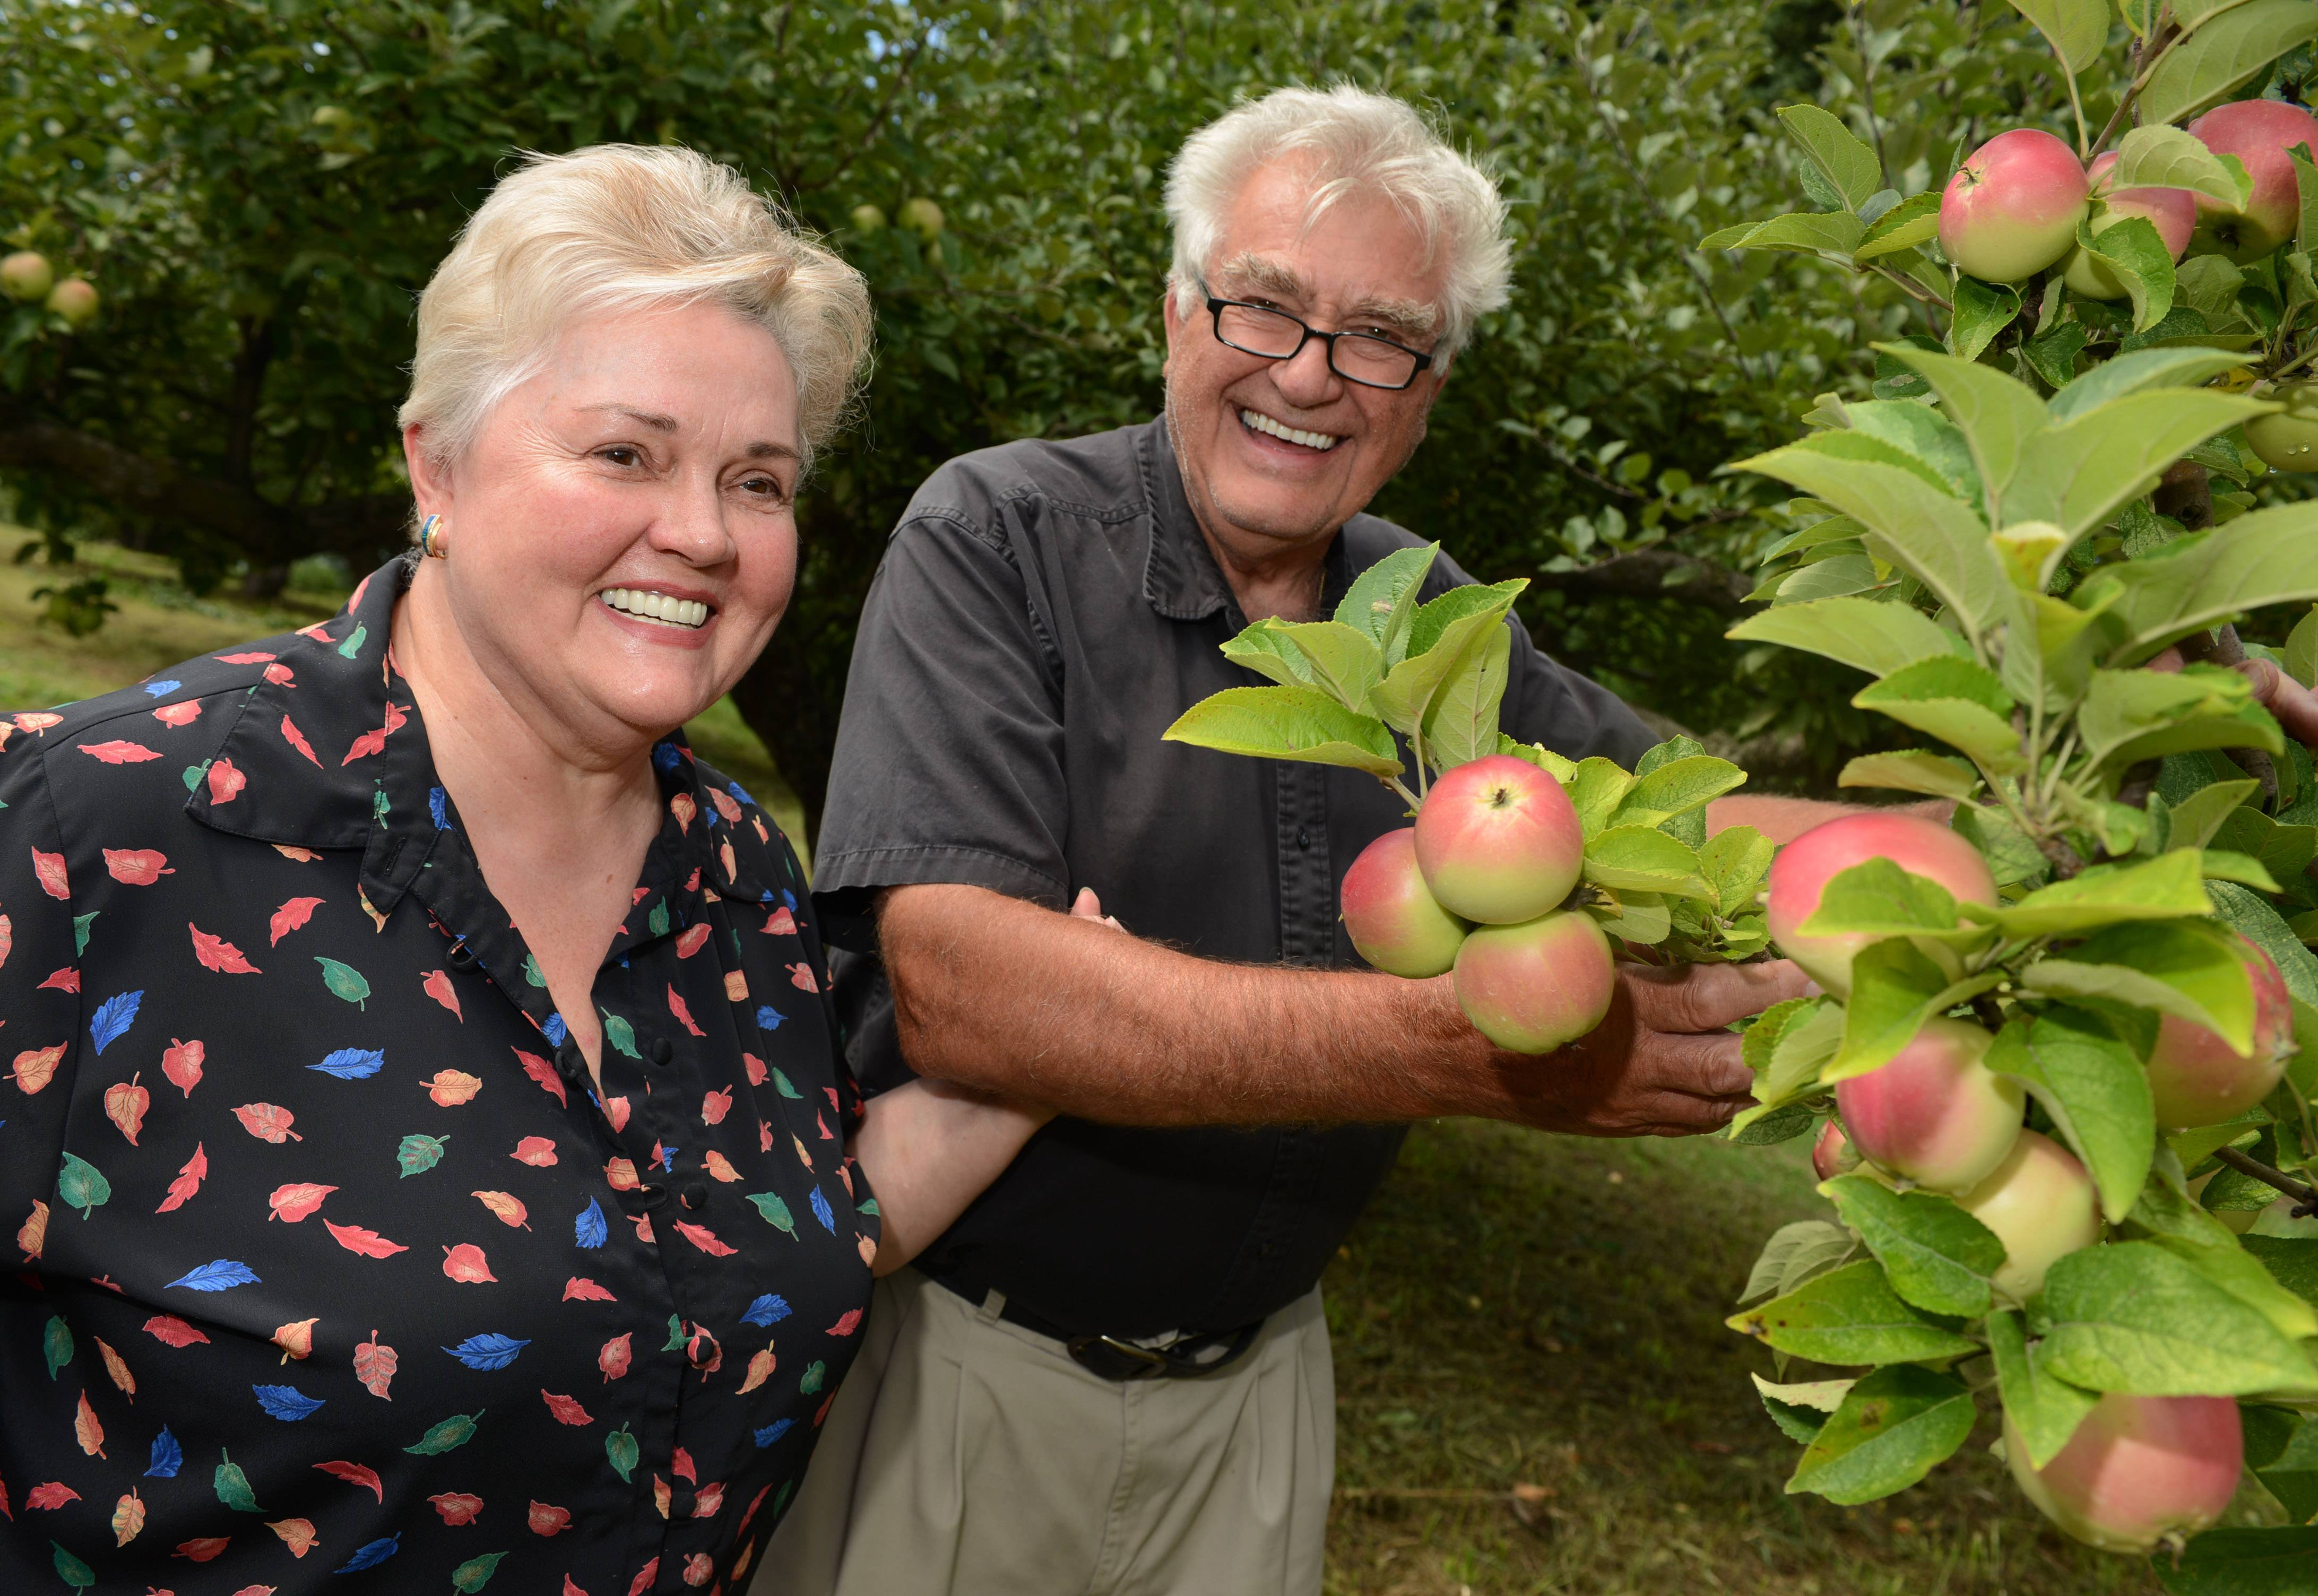 Helga and Josef Ziegler show off a new variety of Winter Banana apples at their Ziegler's Apple Orchard in Grayslake.